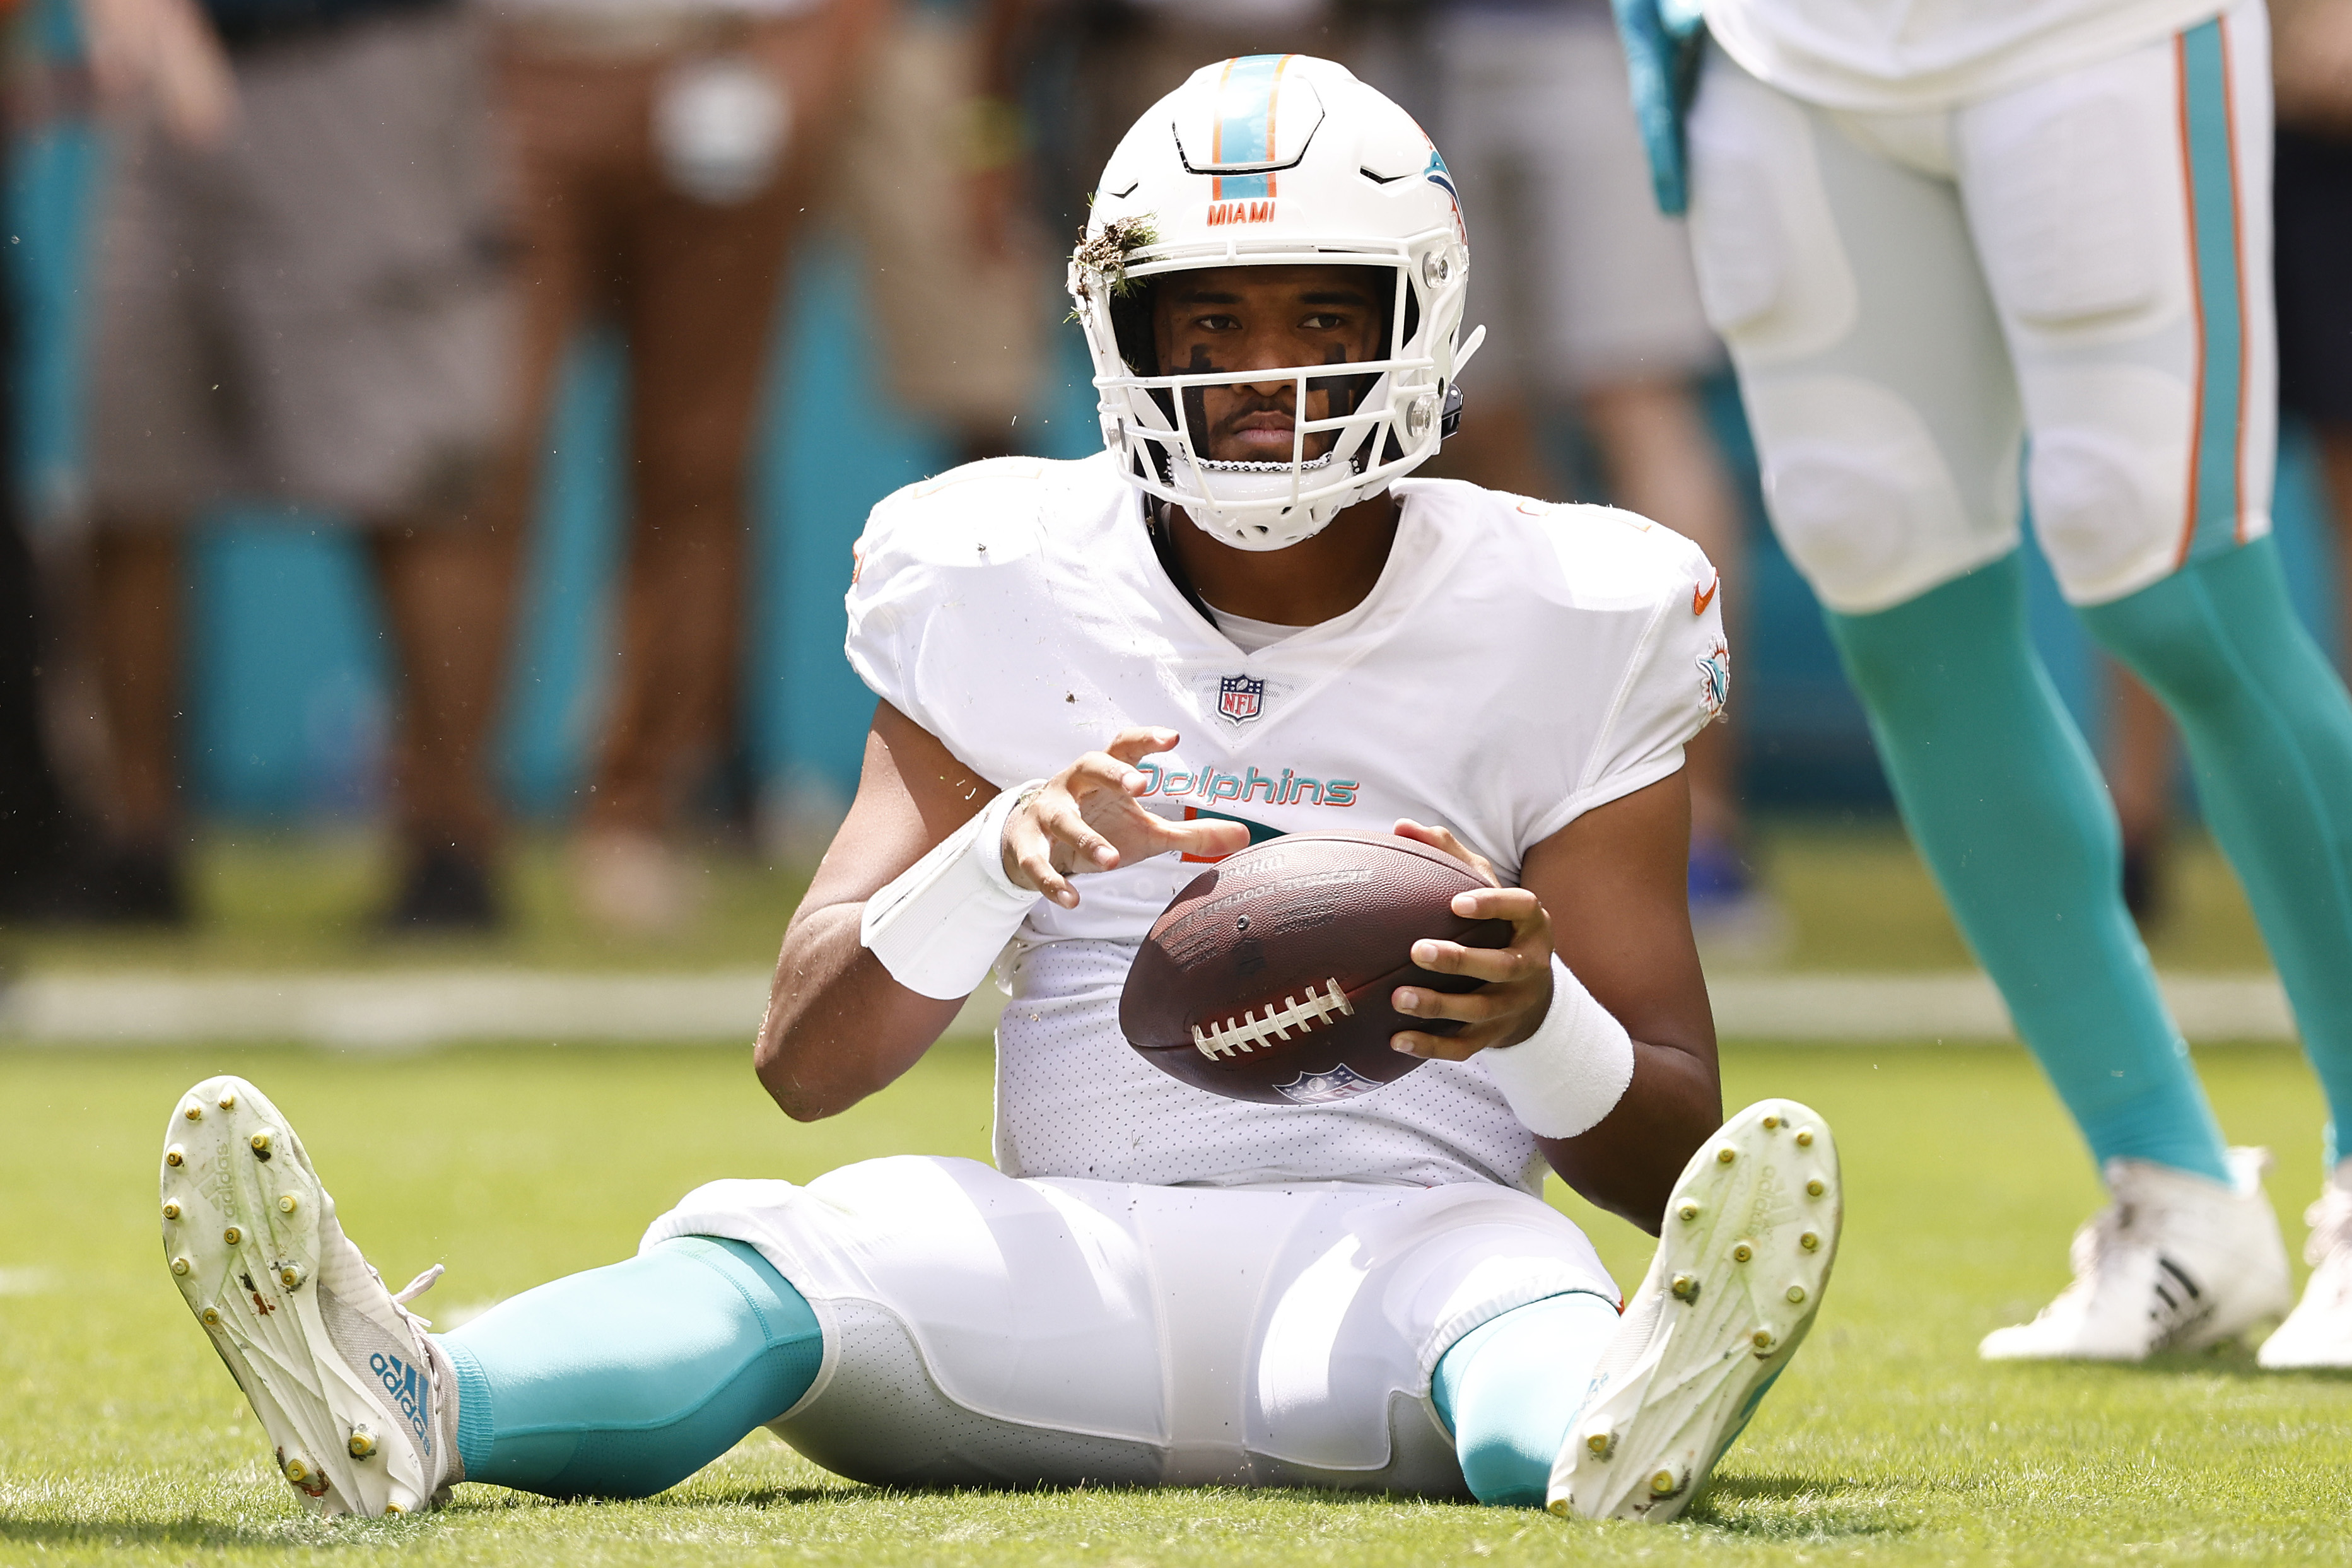 Tua Tagovailoa #1 of the Miami Dolphins reacts after being sacked against the Buffalo Bills during the first quarter at Hard Rock Stadium on September 19, 2021 in Miami Gardens, Florida.